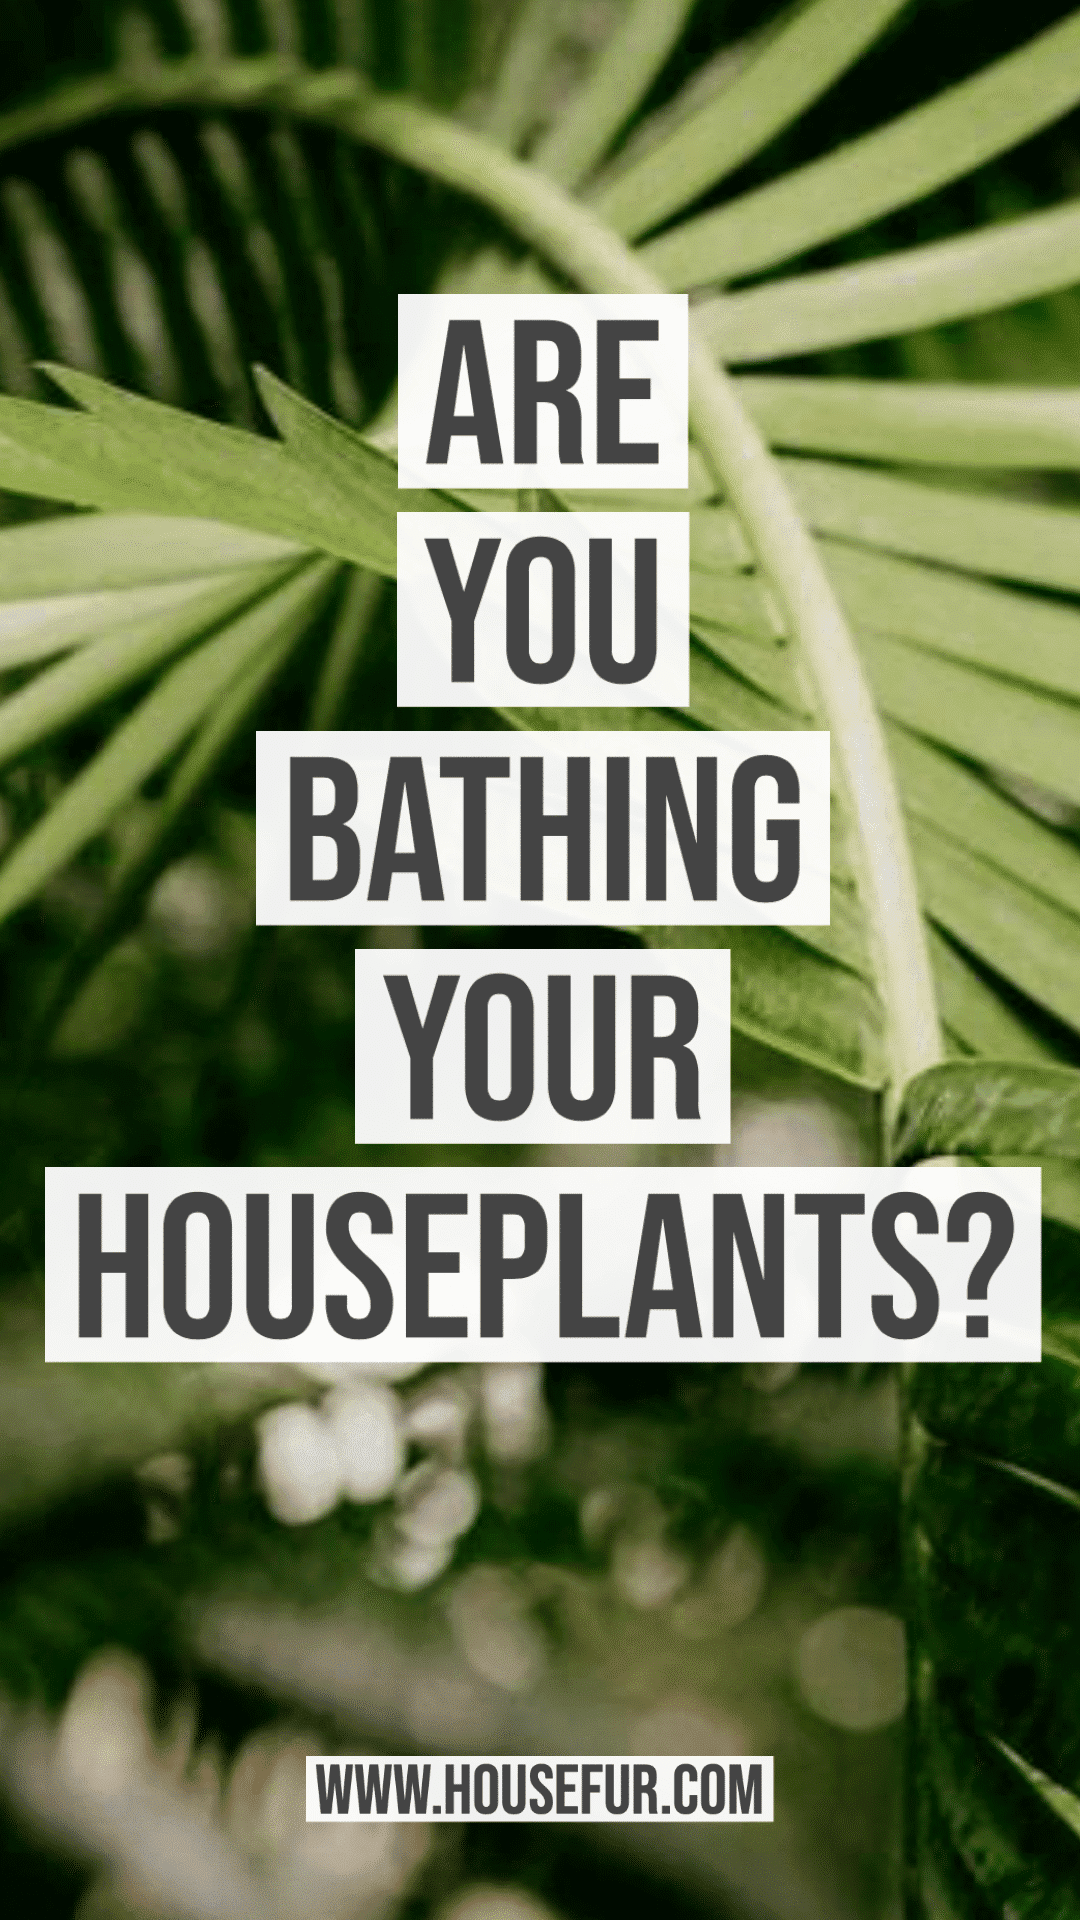 Are You Bathing Your Houseplants?